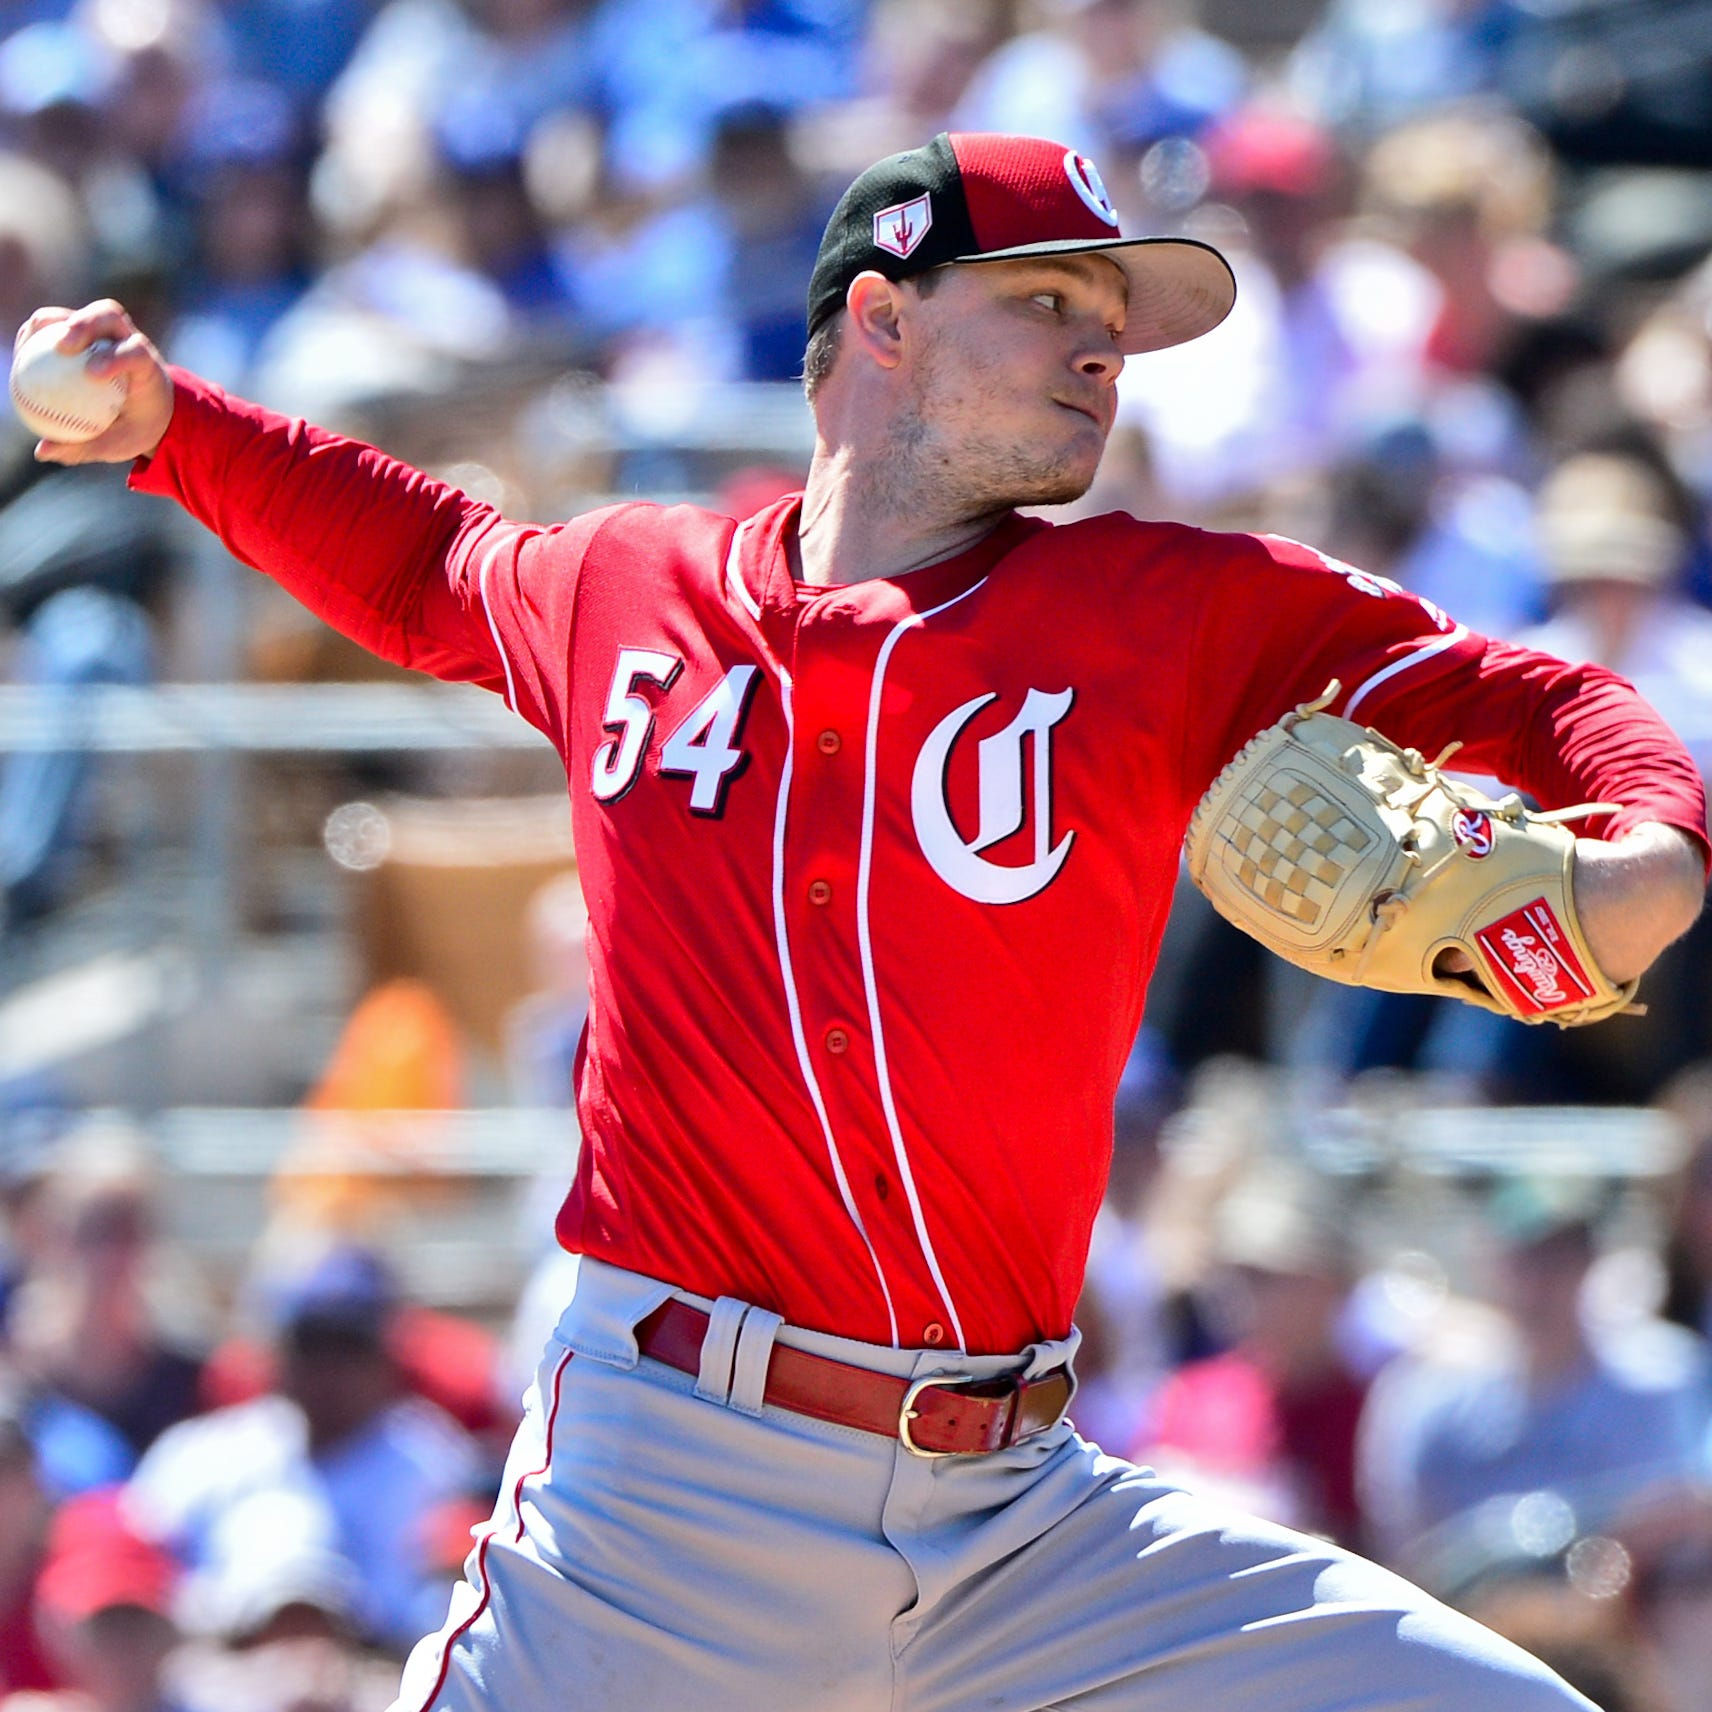 Sonny Gray pitches 3 perfect innings as Cincinnati Reds tie Los Angeles Dodgers